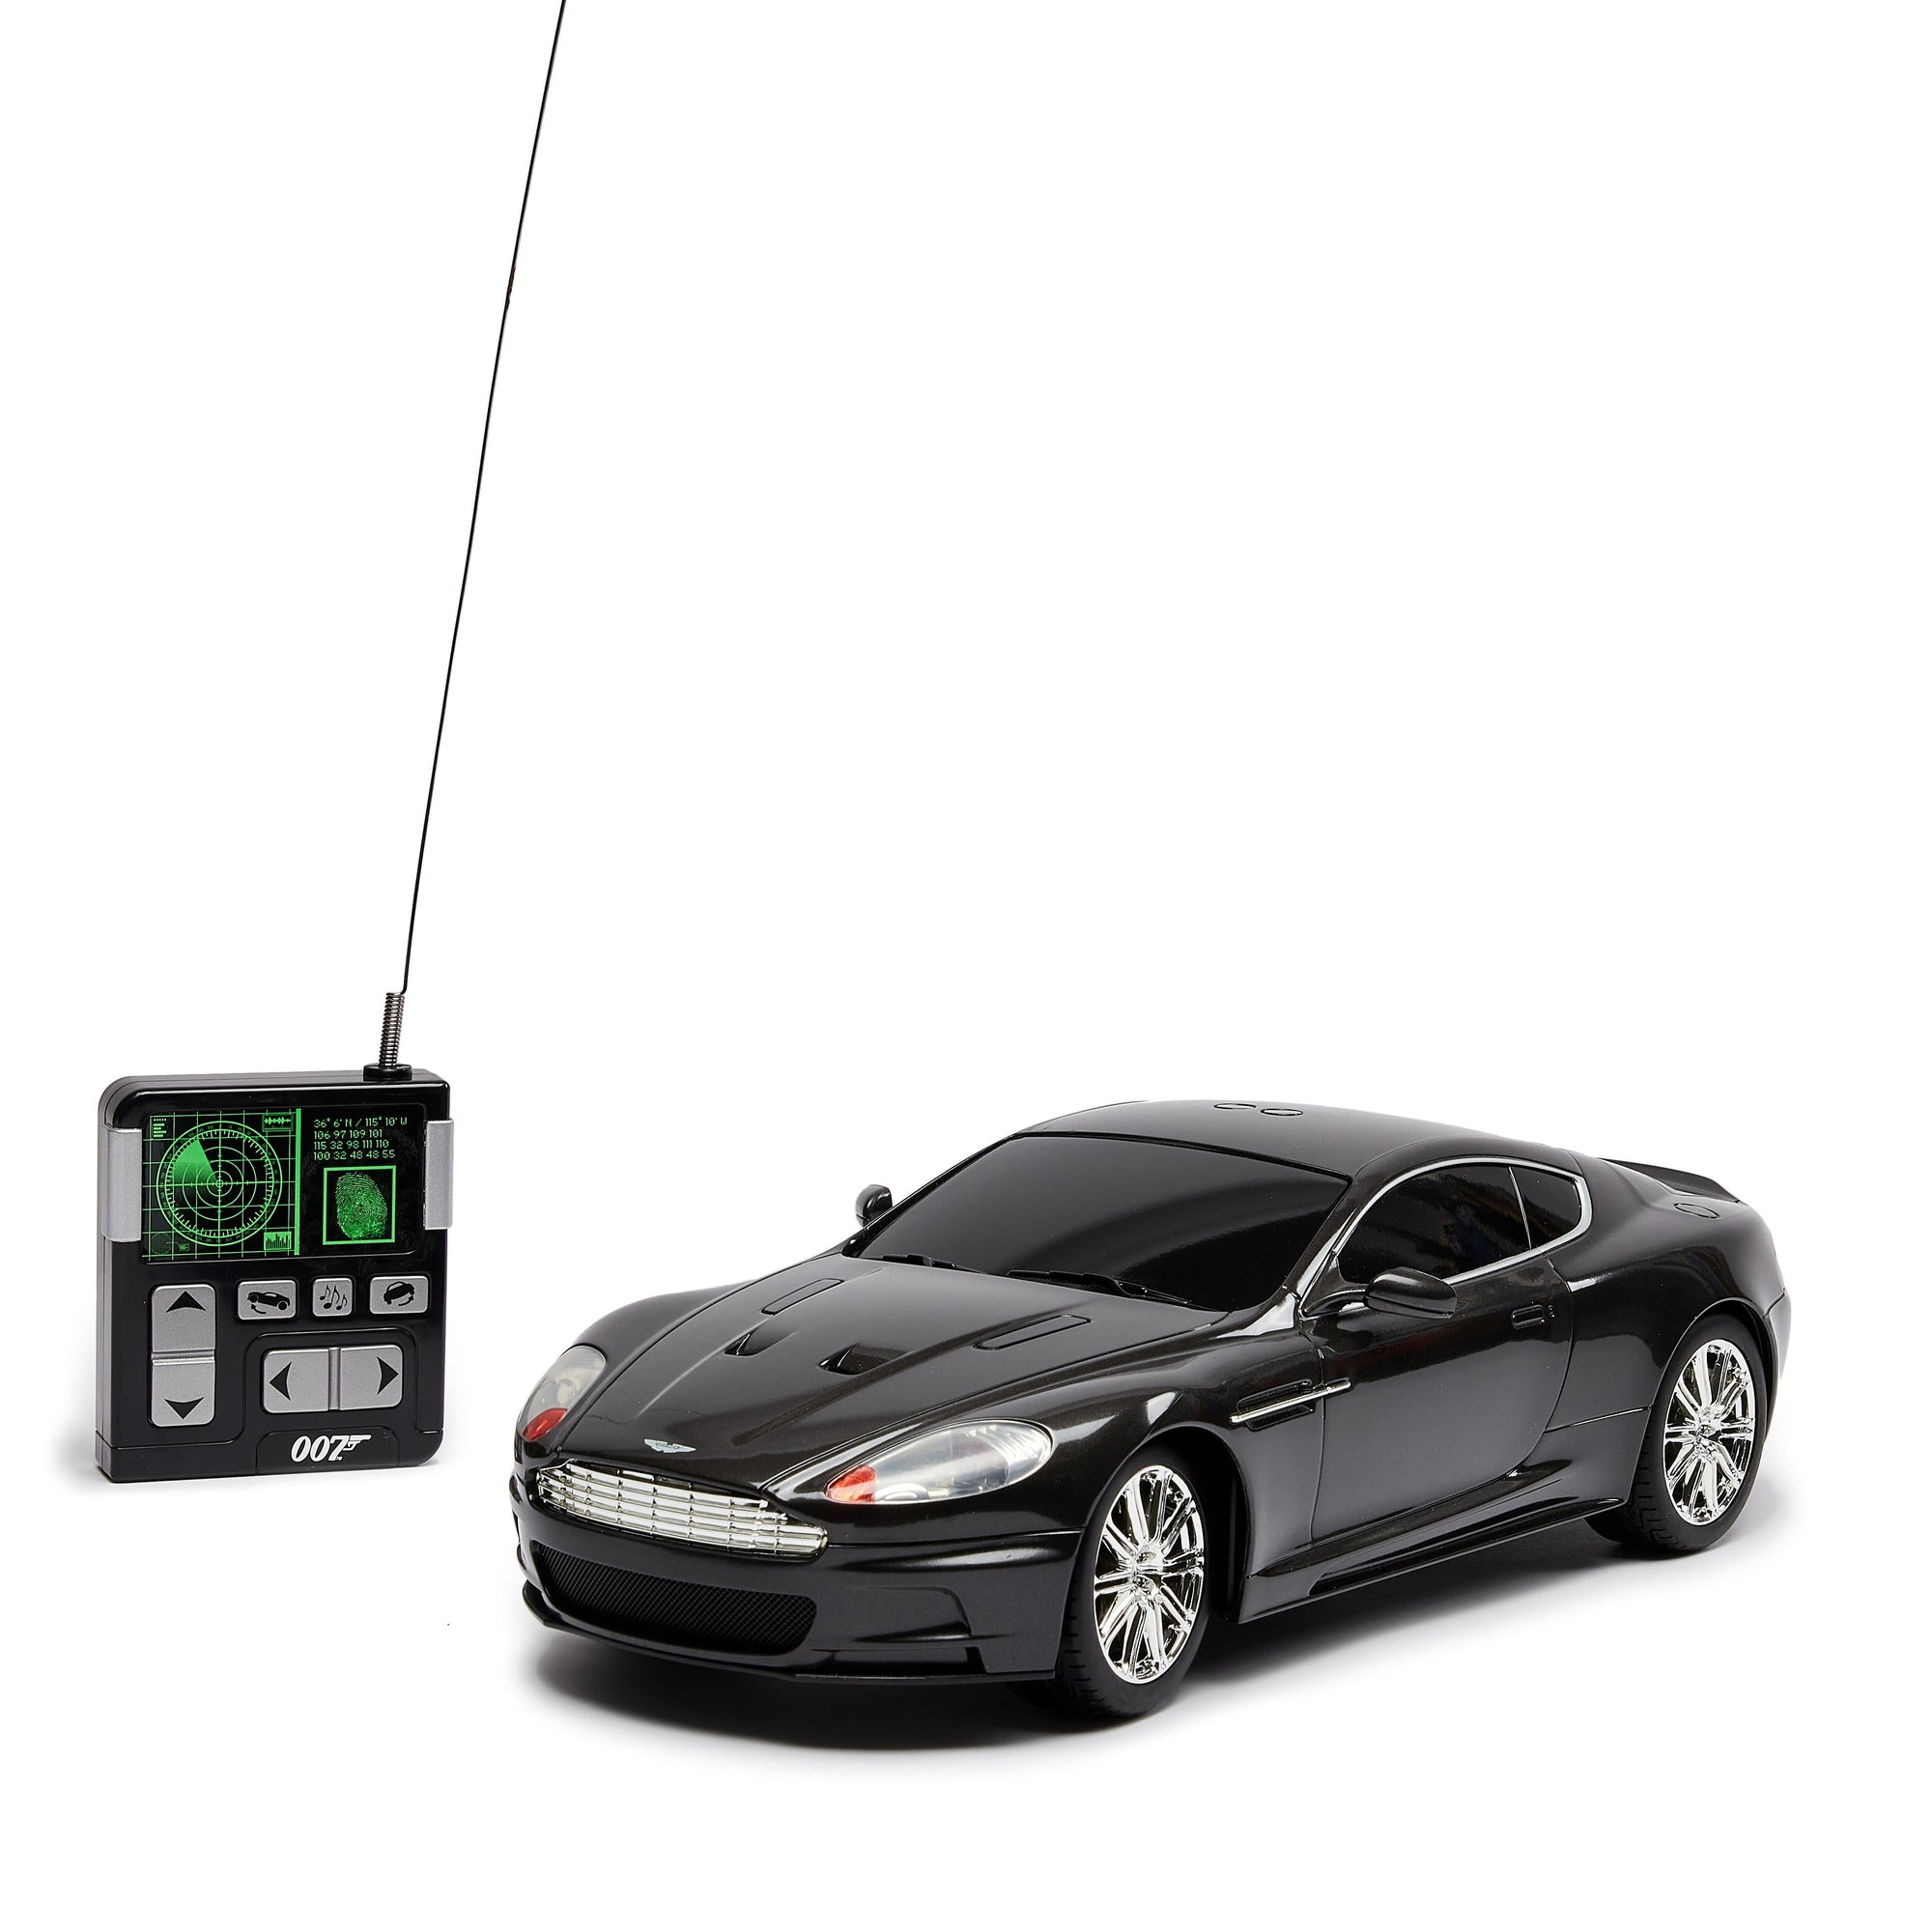 007 Aston Martin DBS Remote Control Car - Quantum Of Solace Edition